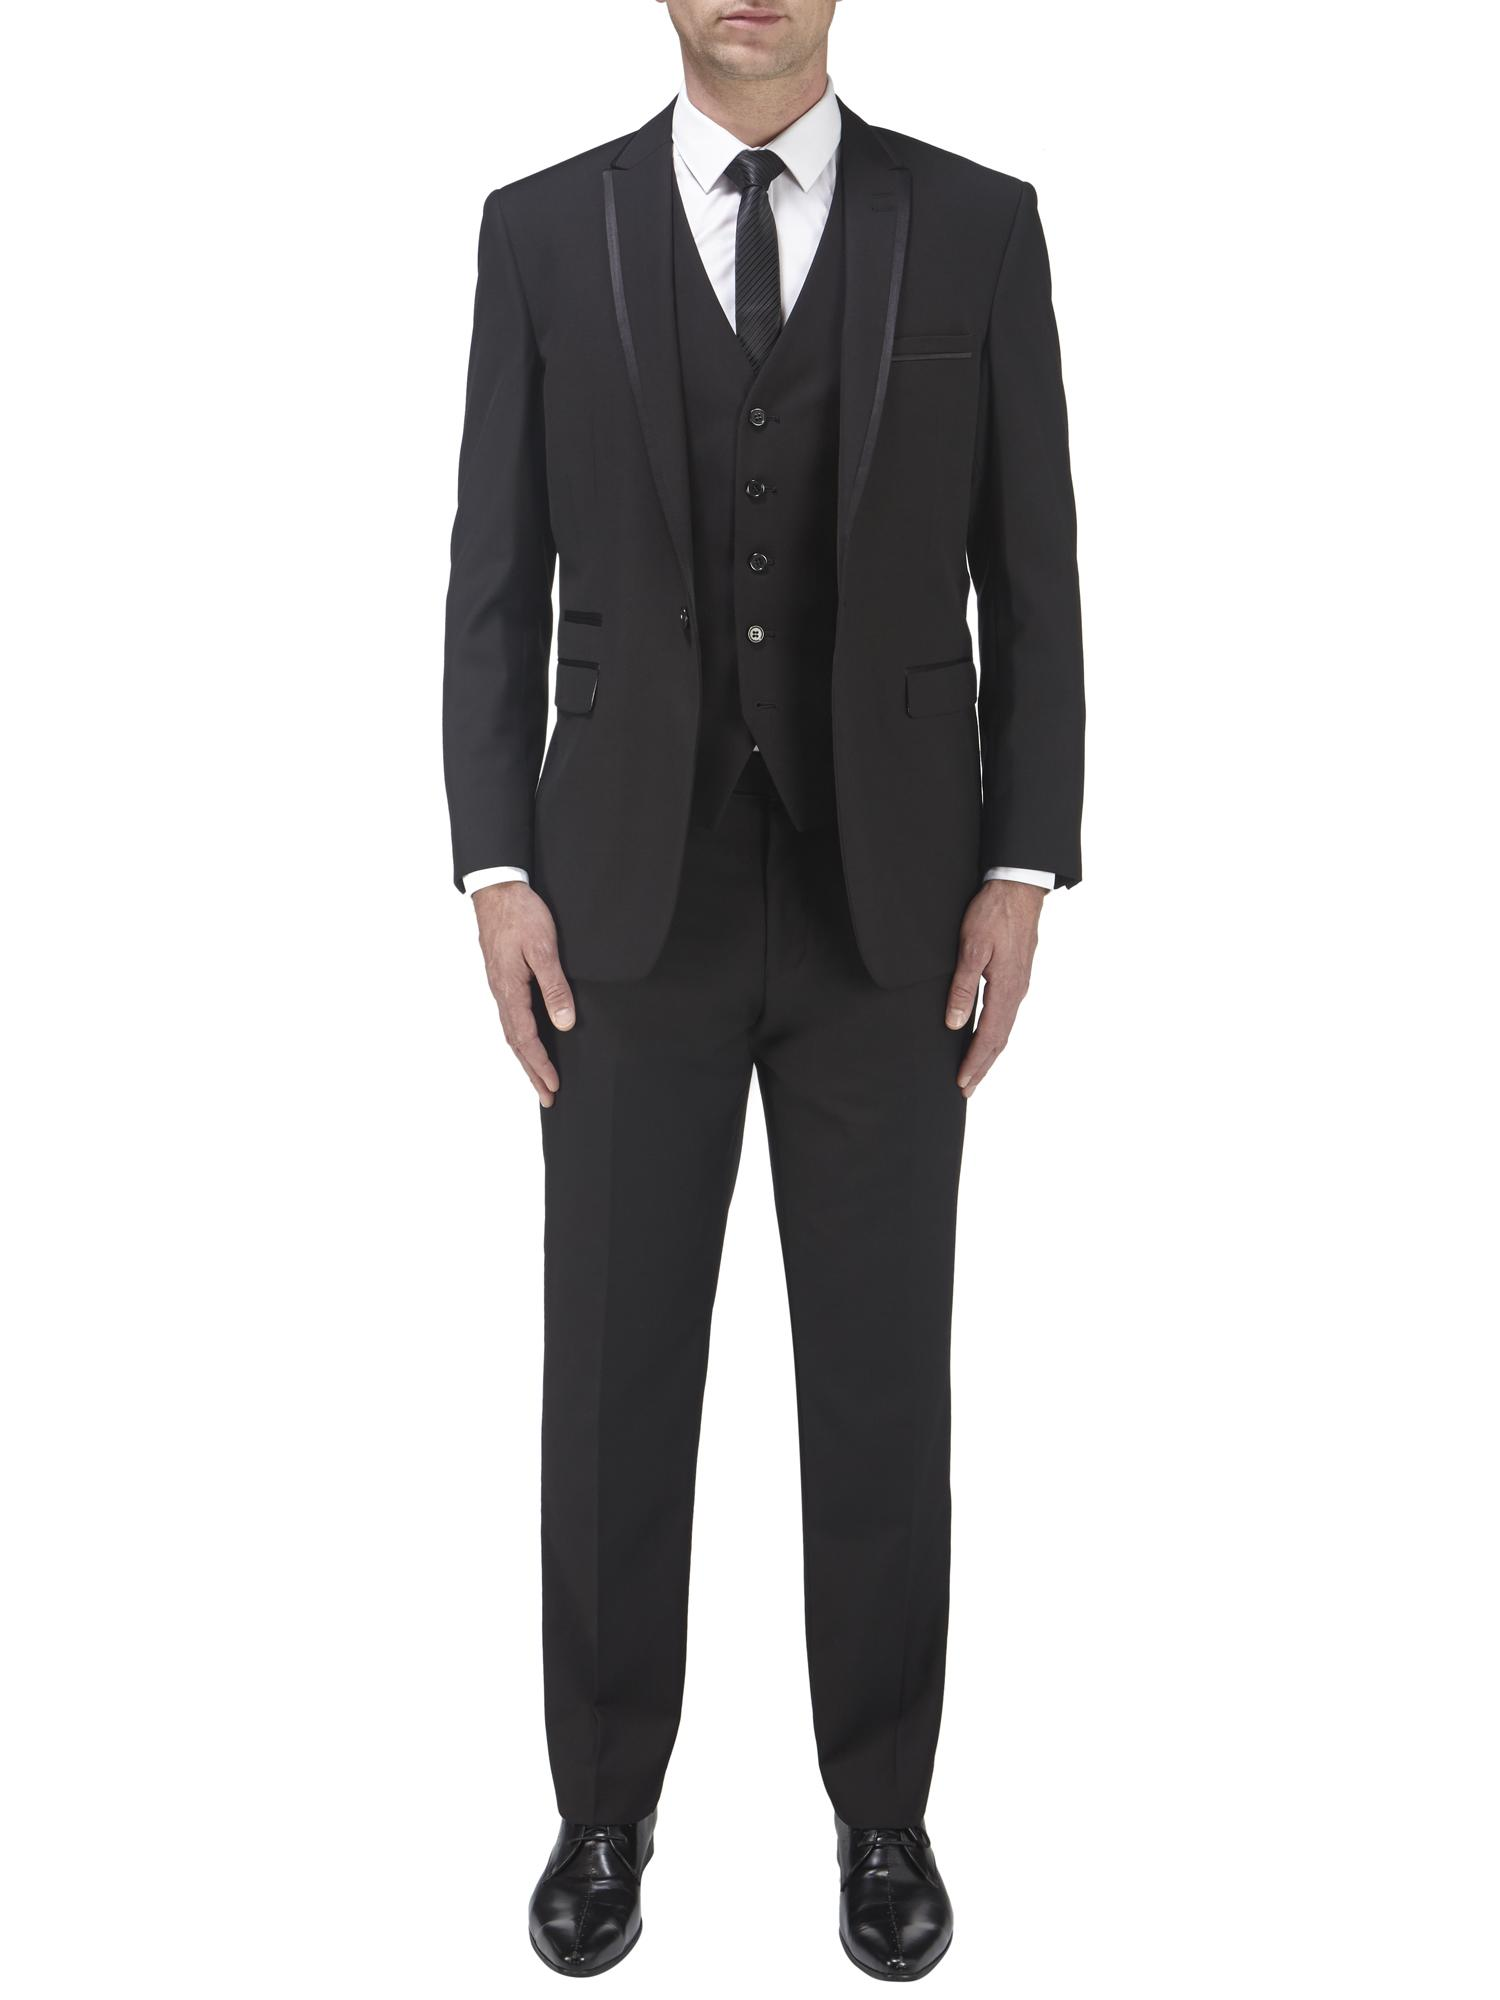 ronson-dermot-anthony-suit-black.jpg